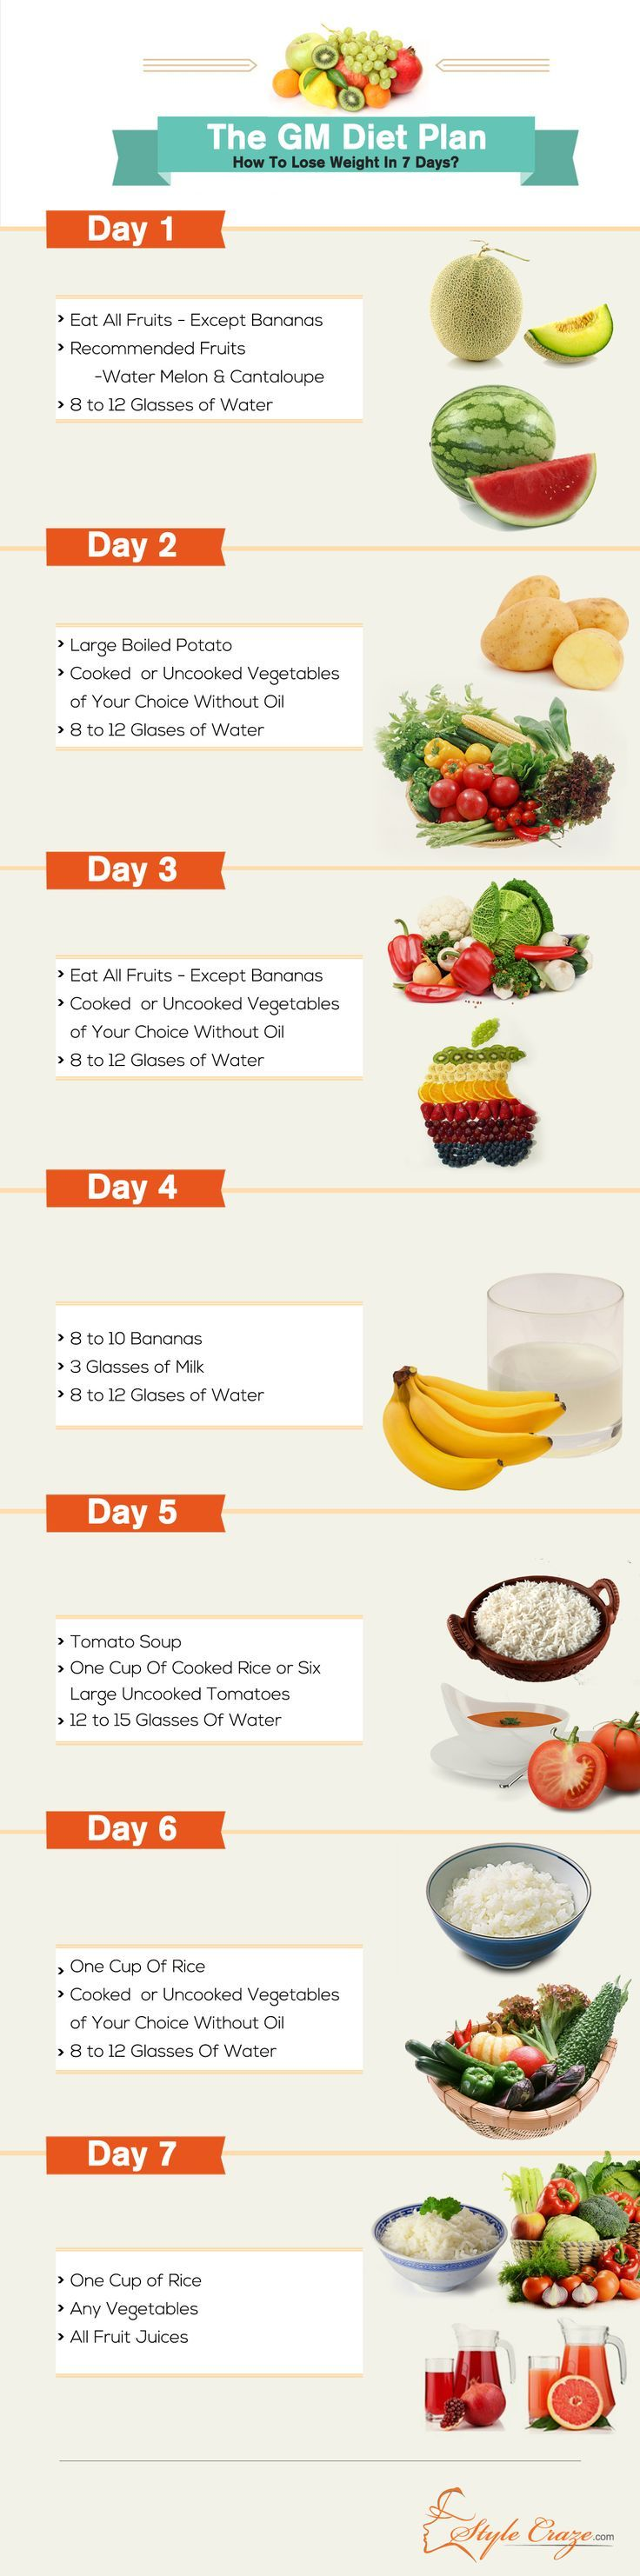 The GM Diet Plan: How To Lose Weight In 7 Days?  http://megastoon.com/?share=249477